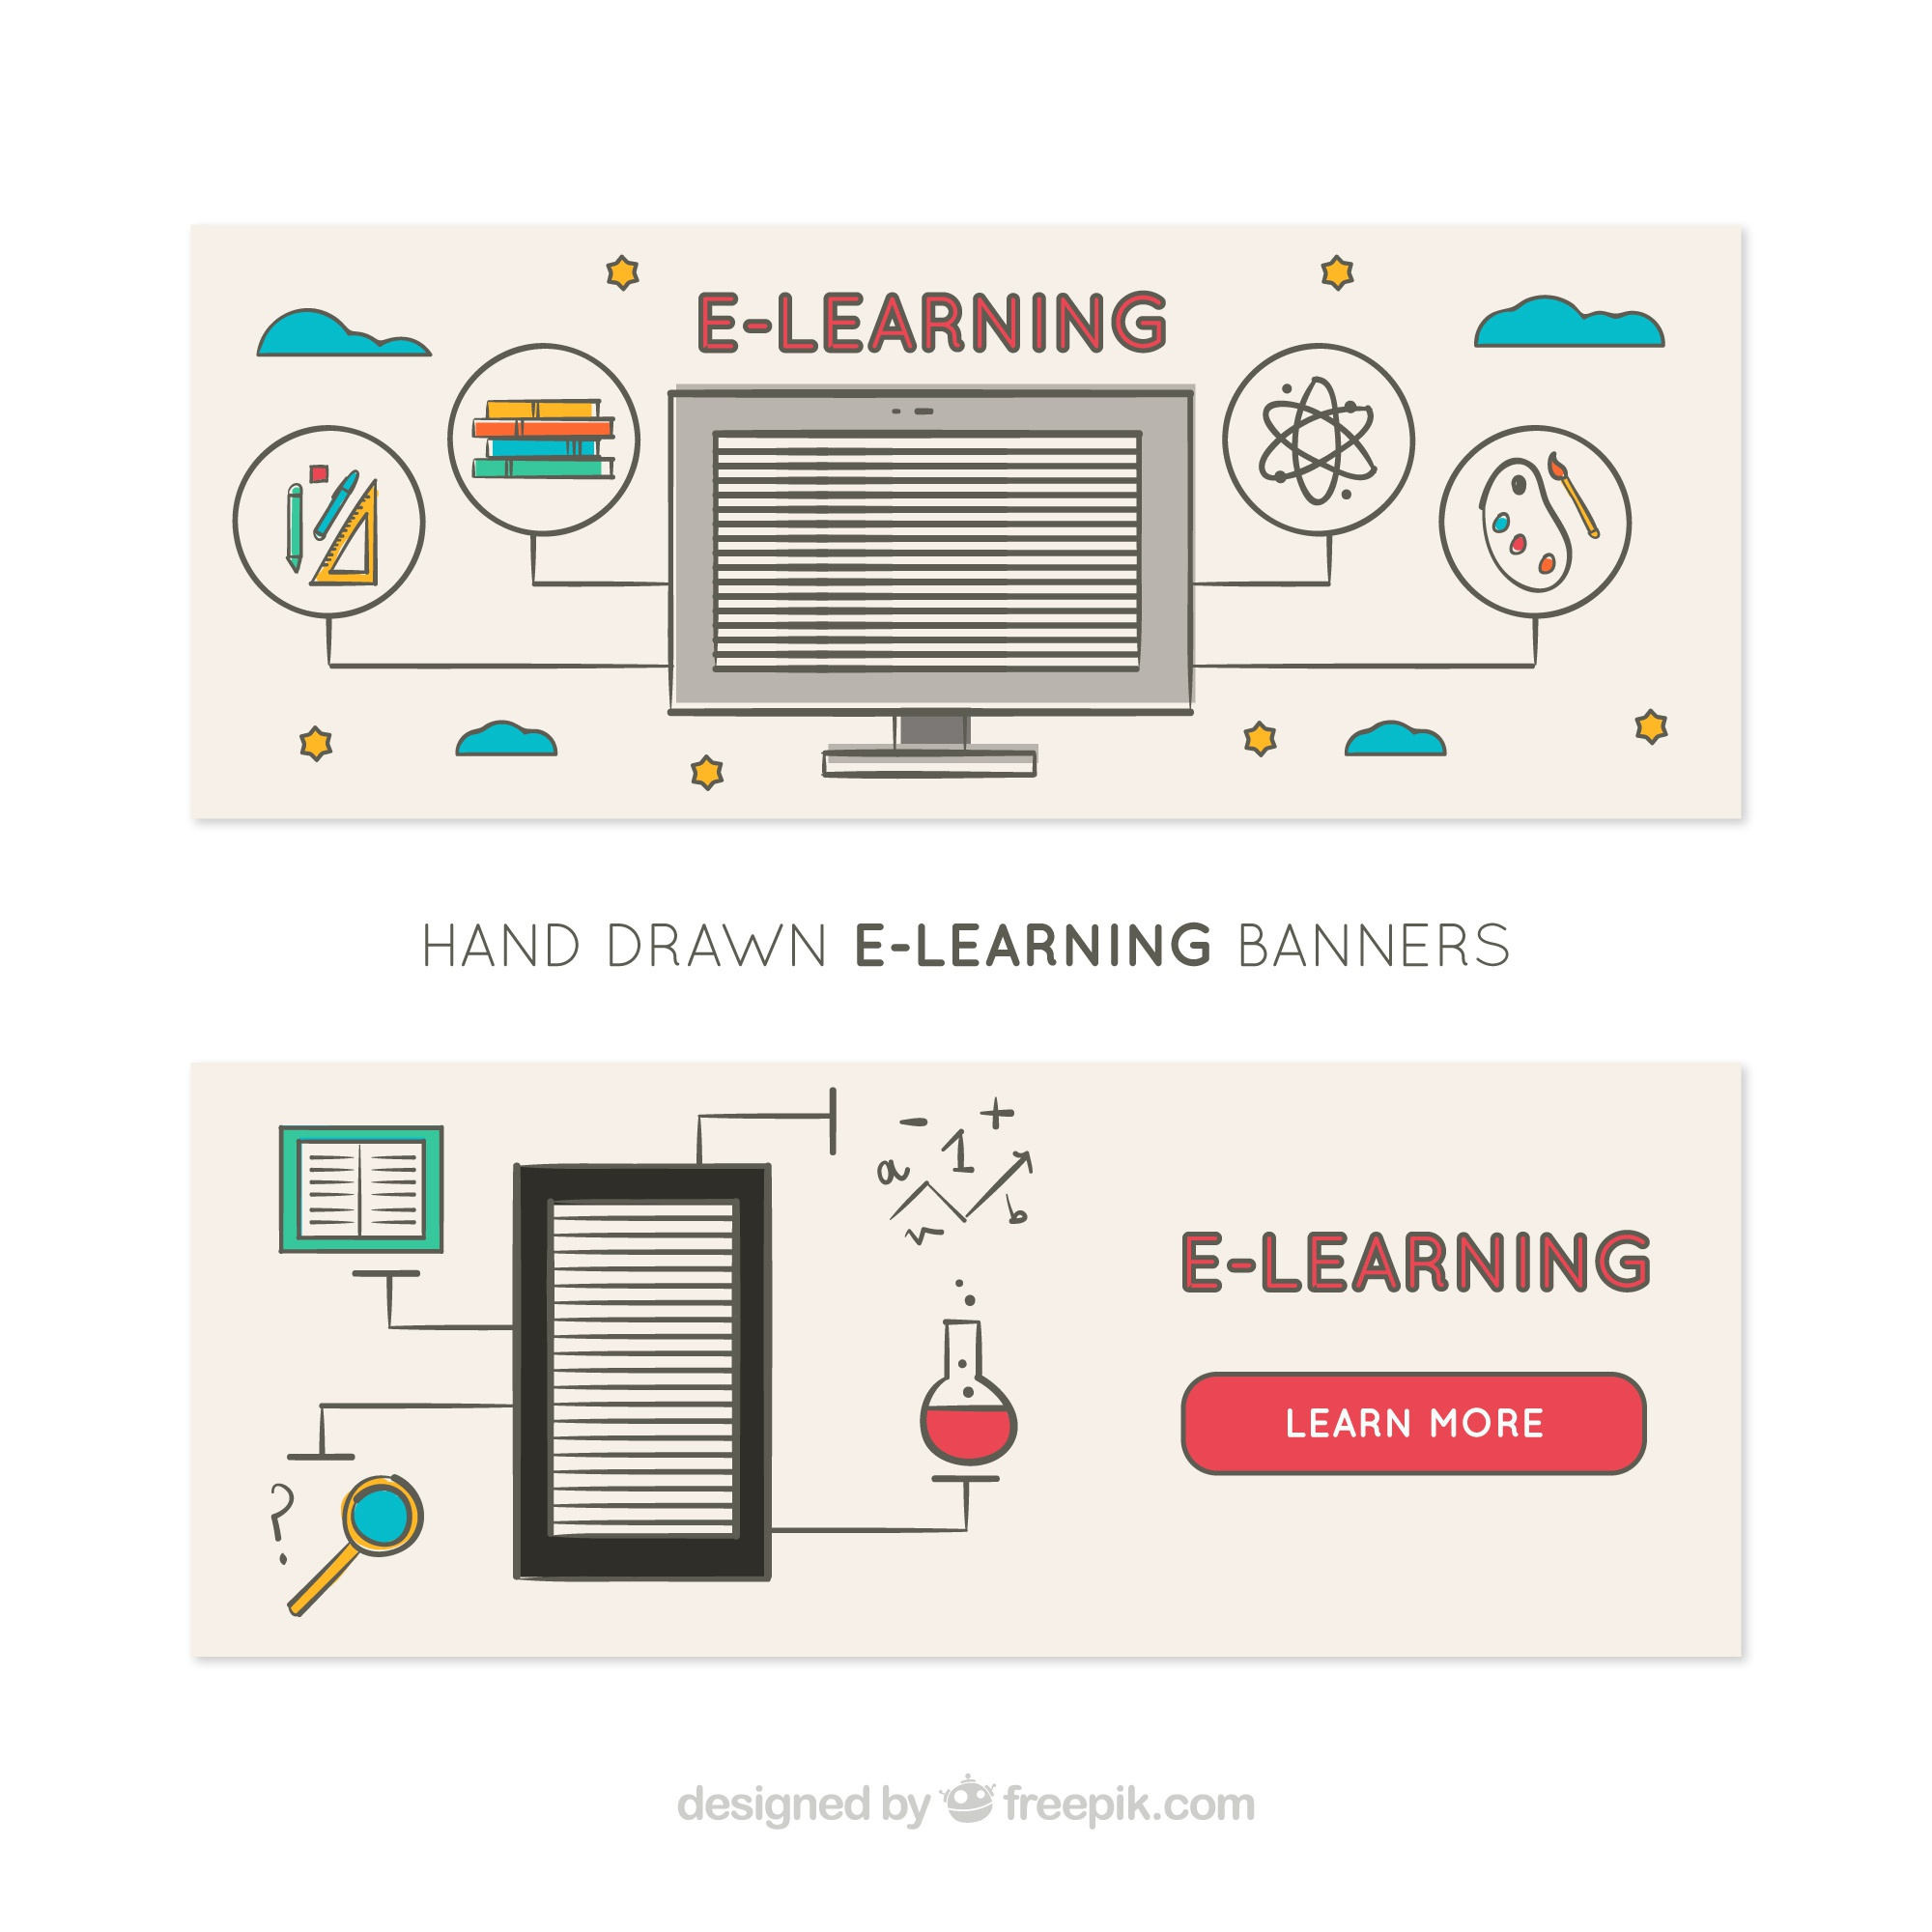 Hand-drawn banners with digital learning elements